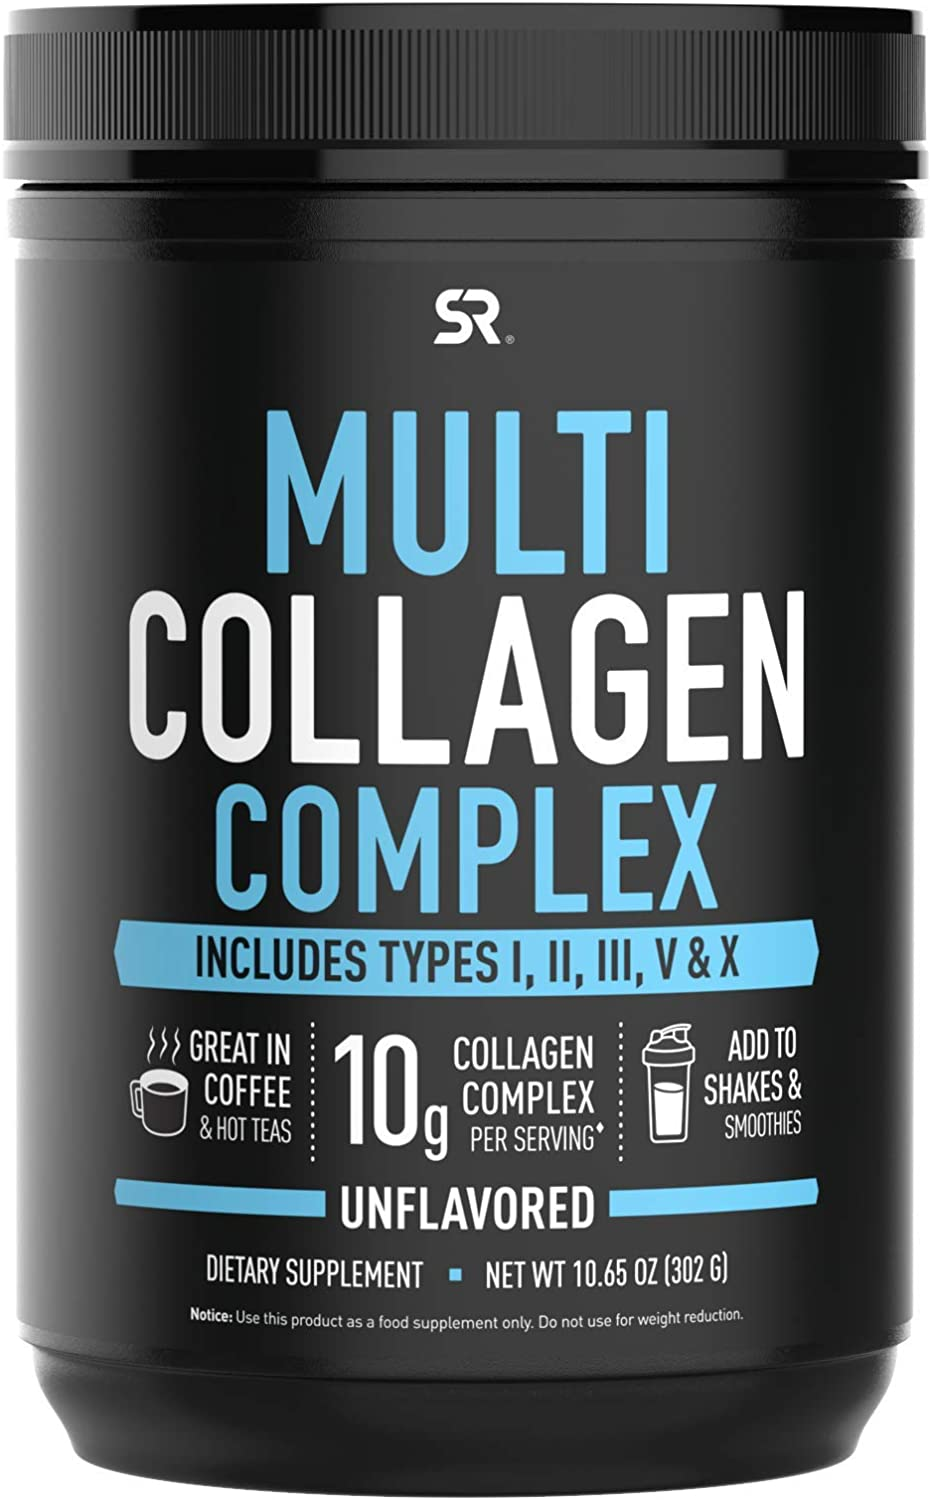 Multi Collagen Protein Powder (Type I, II, III, V, X) with Hyaluronic Acid + Vitamin C | 5 Types of Food Based Collagen, Great in Coffee & Protein Drinks | Non-GMO Verified. 30 Servings (Unflavored)